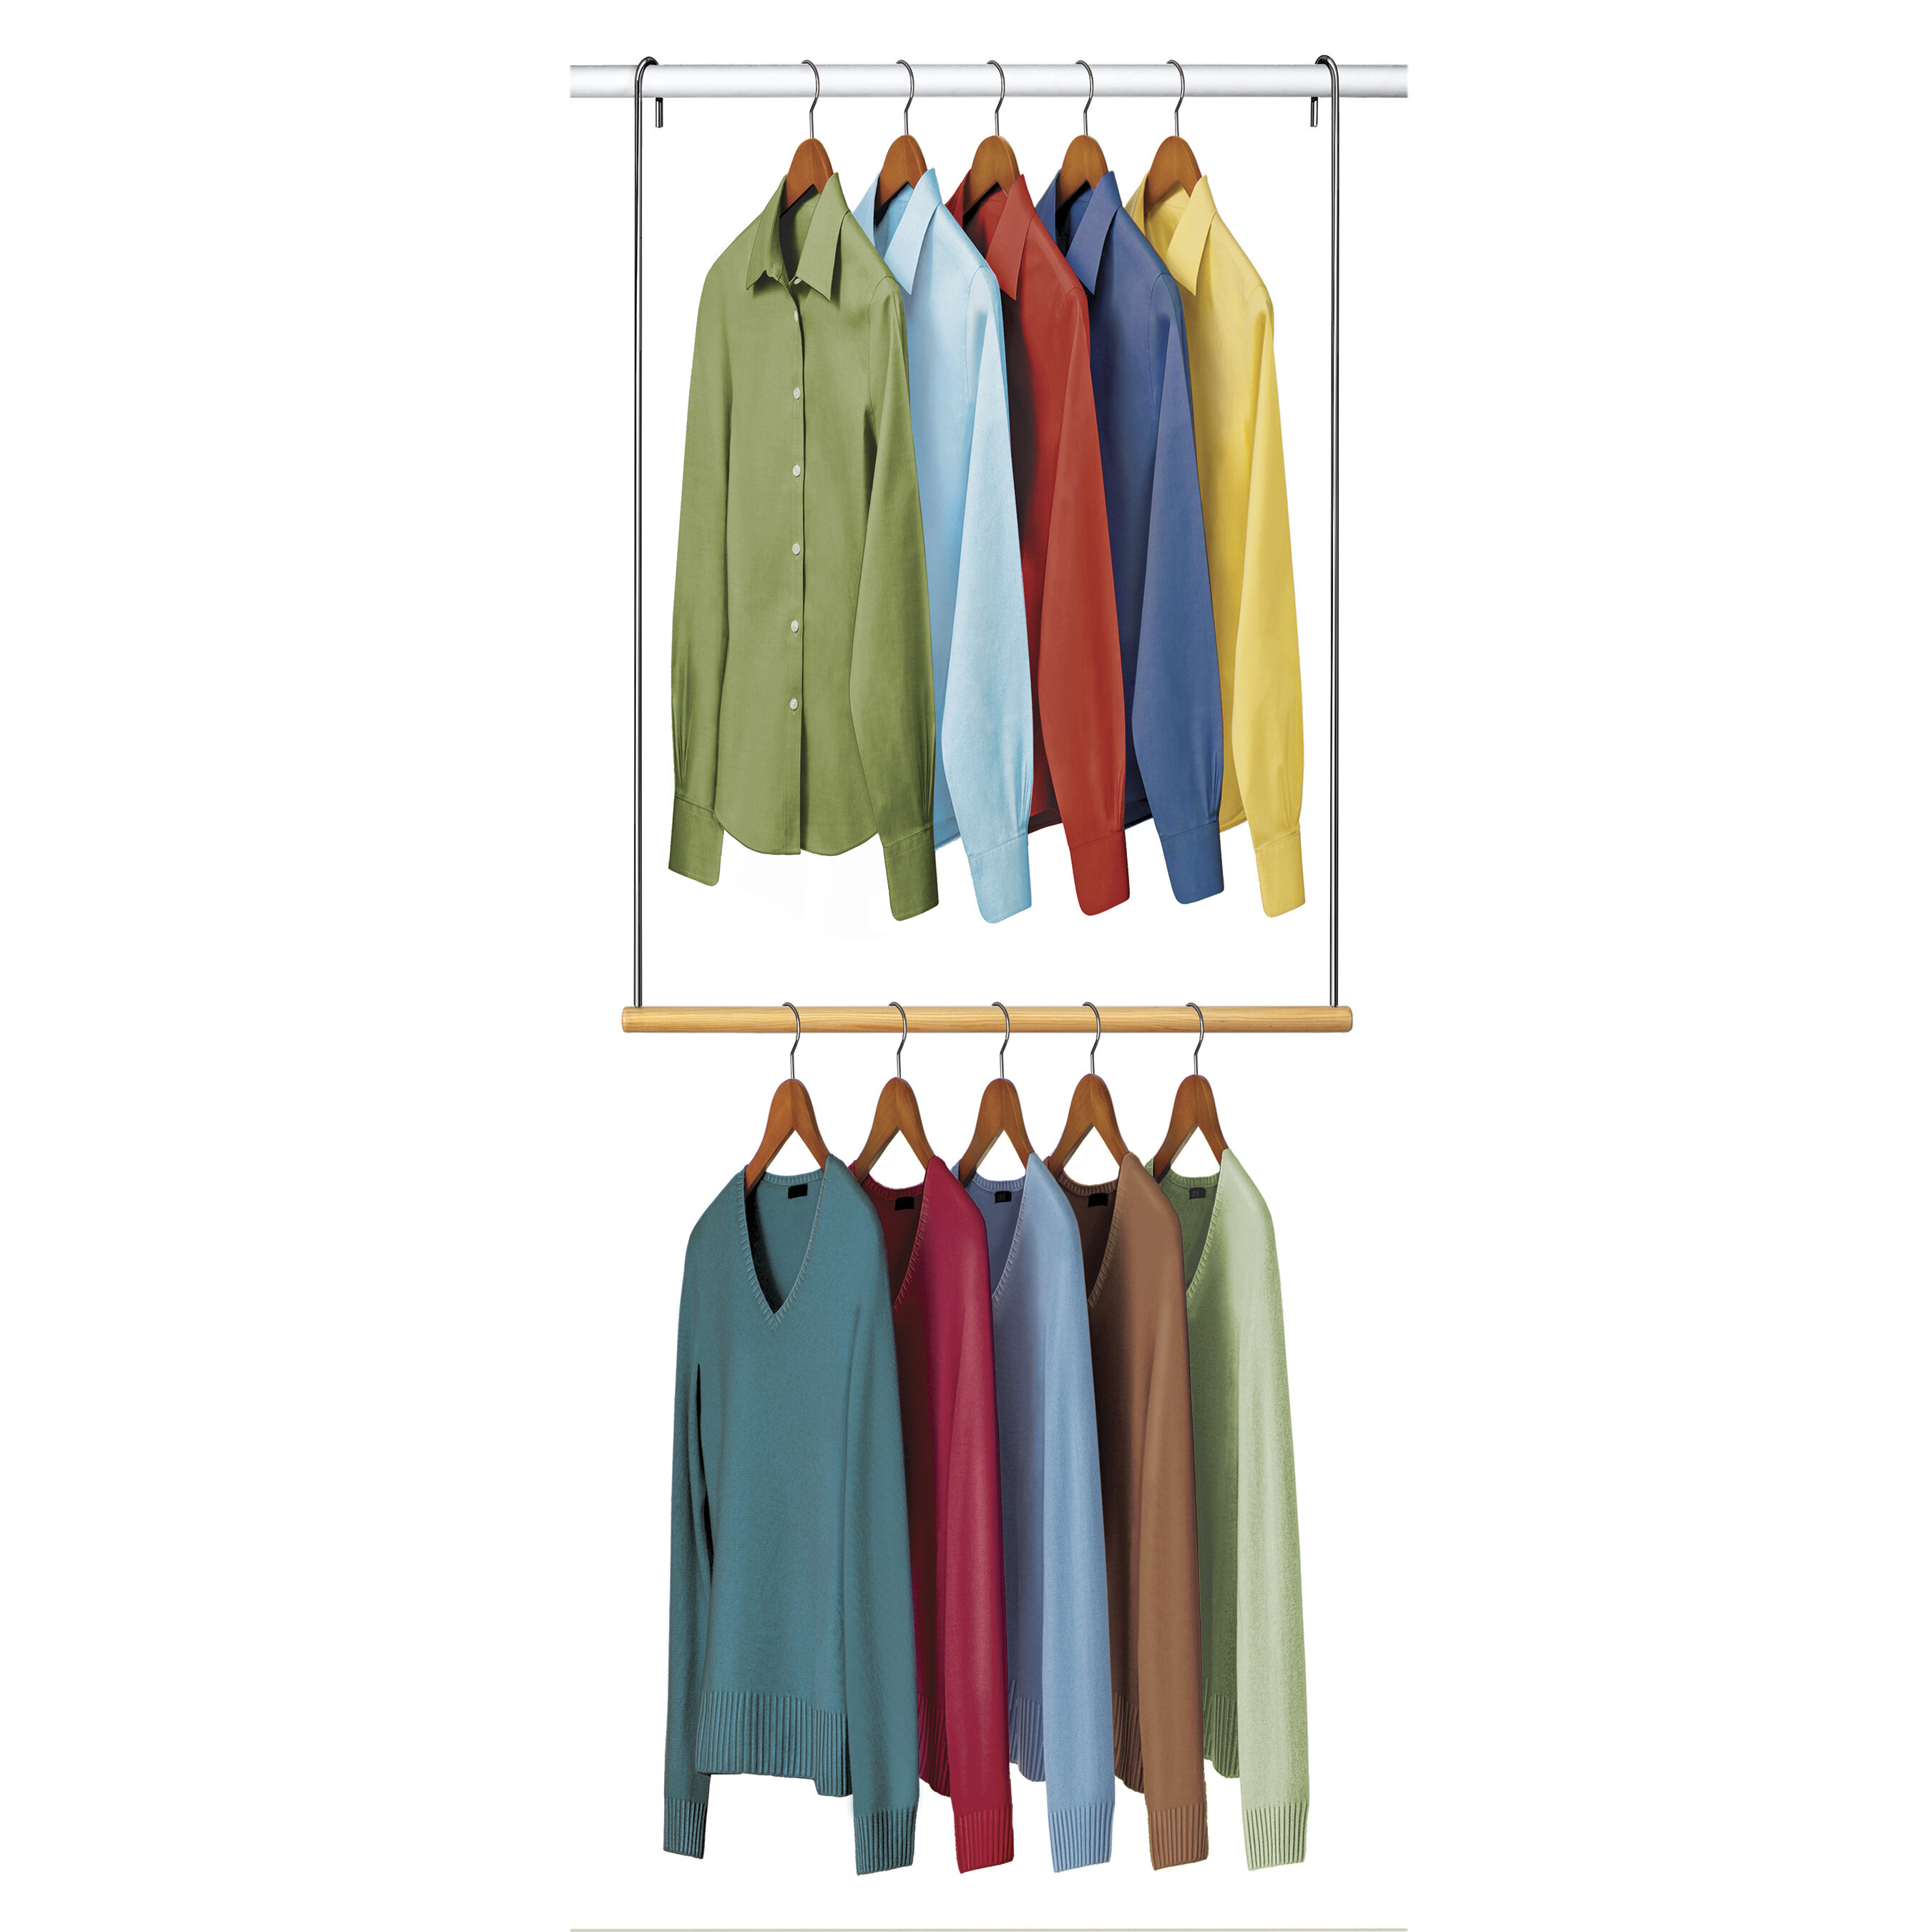 double organize and rod shelf hang it hanging asp brackets rods price up closet